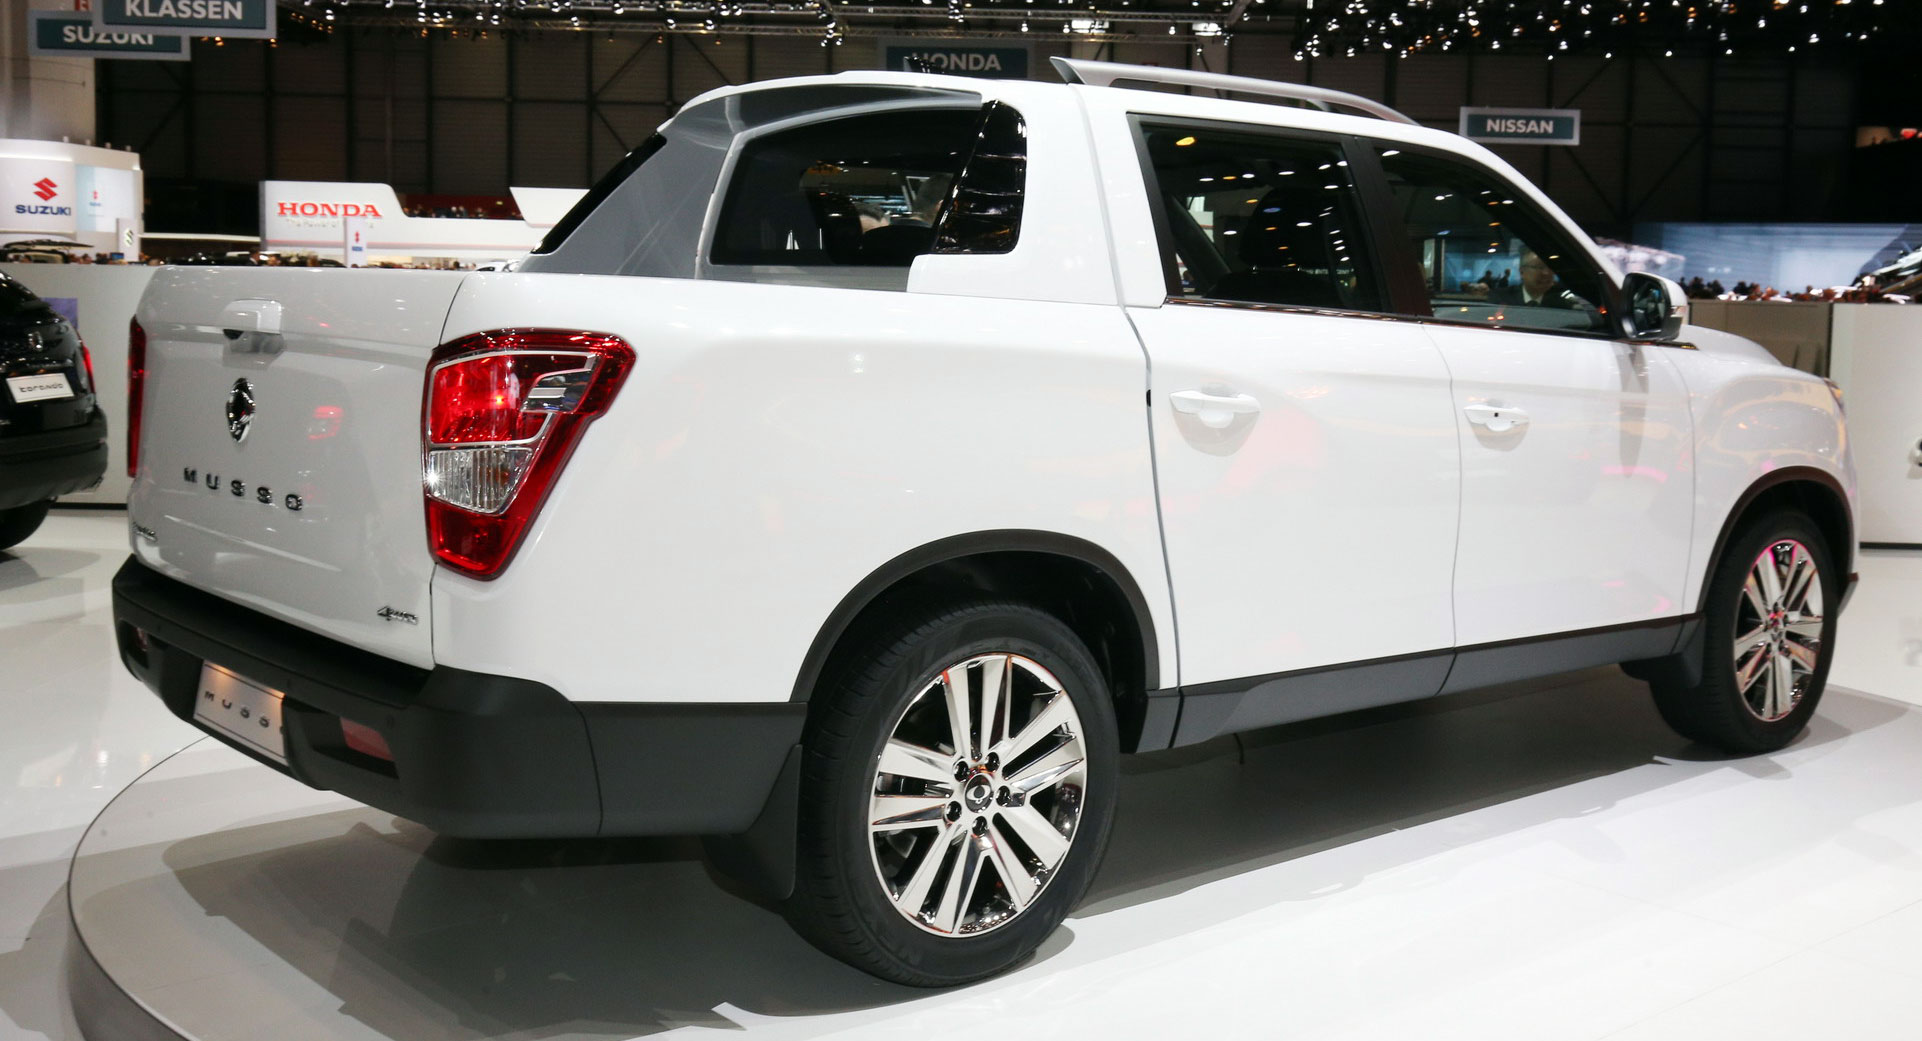 2019 SsangYong Musso Wants To Be Europes Honda Ridgeline